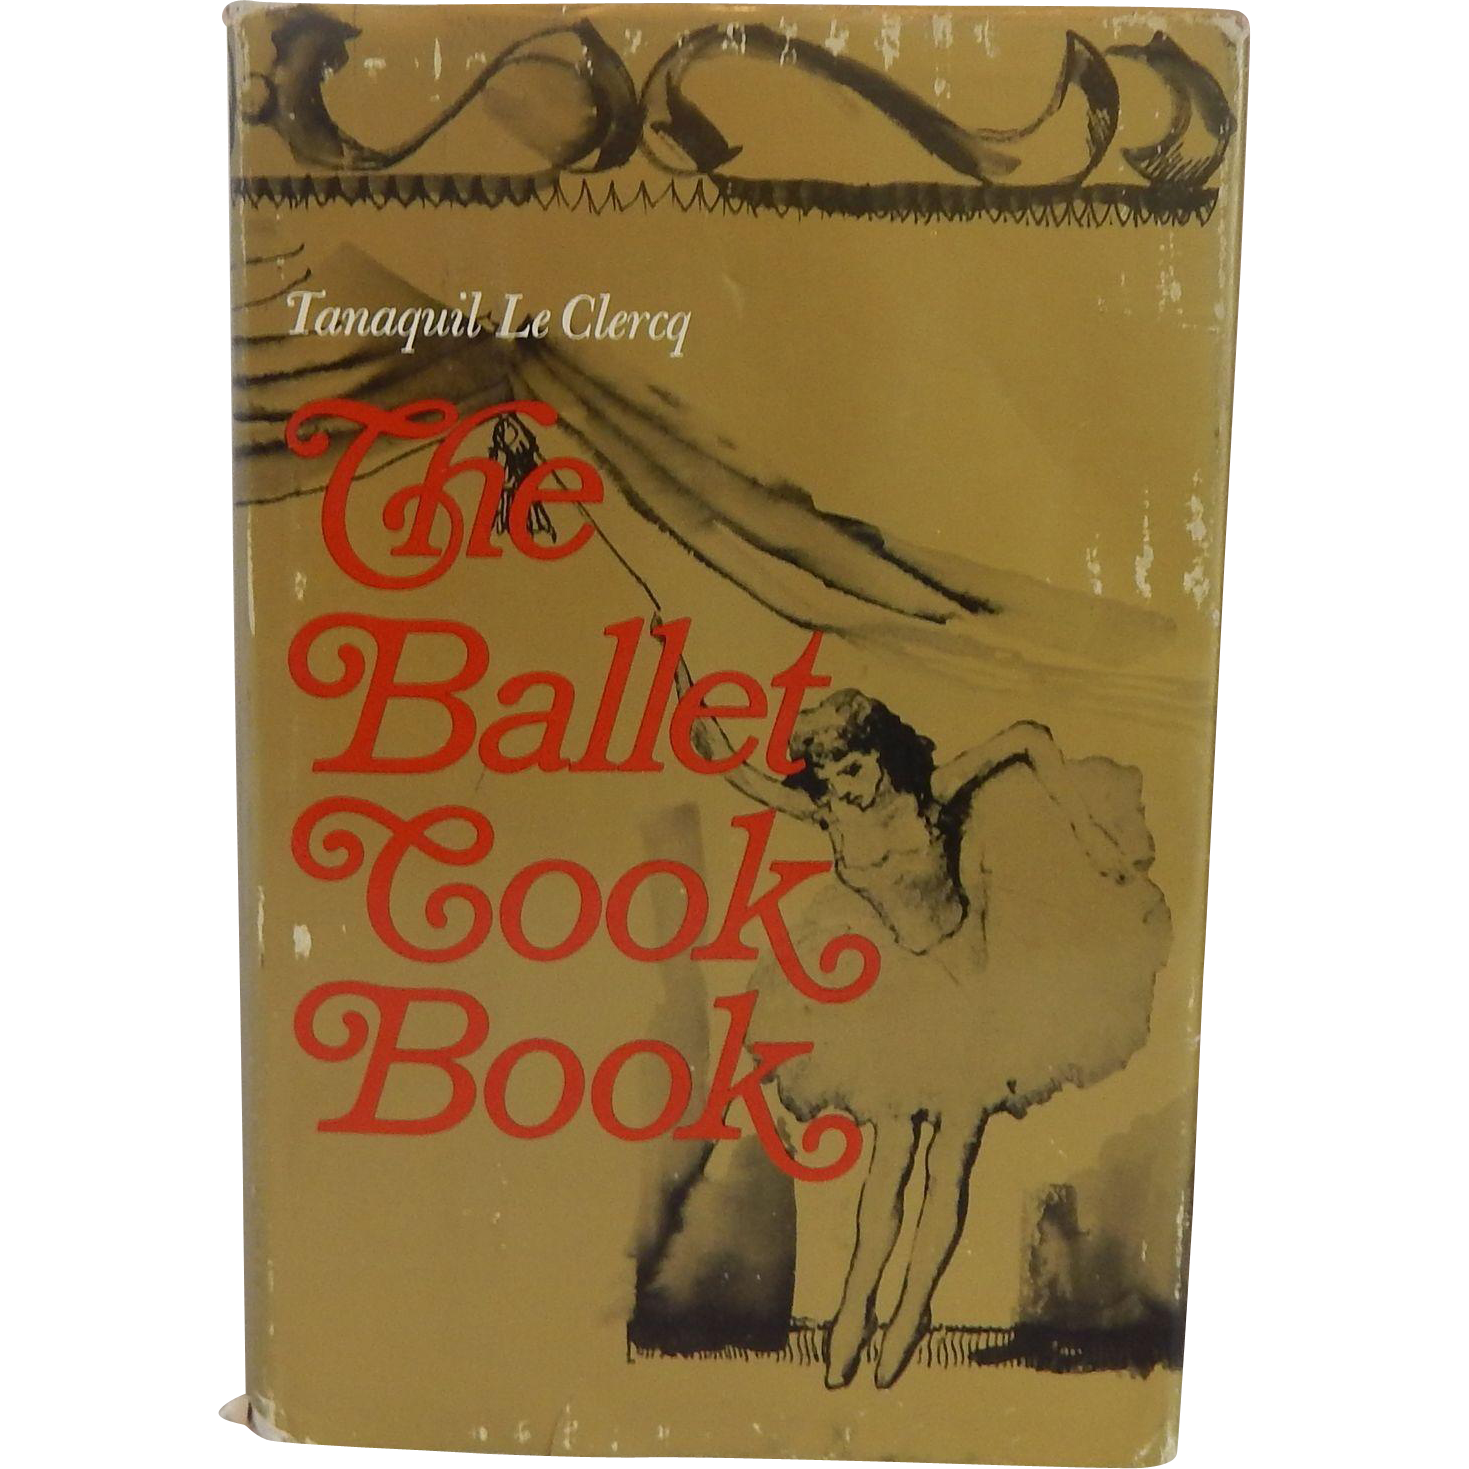 Tanaquil Le Clercq The Ballet Cook Book